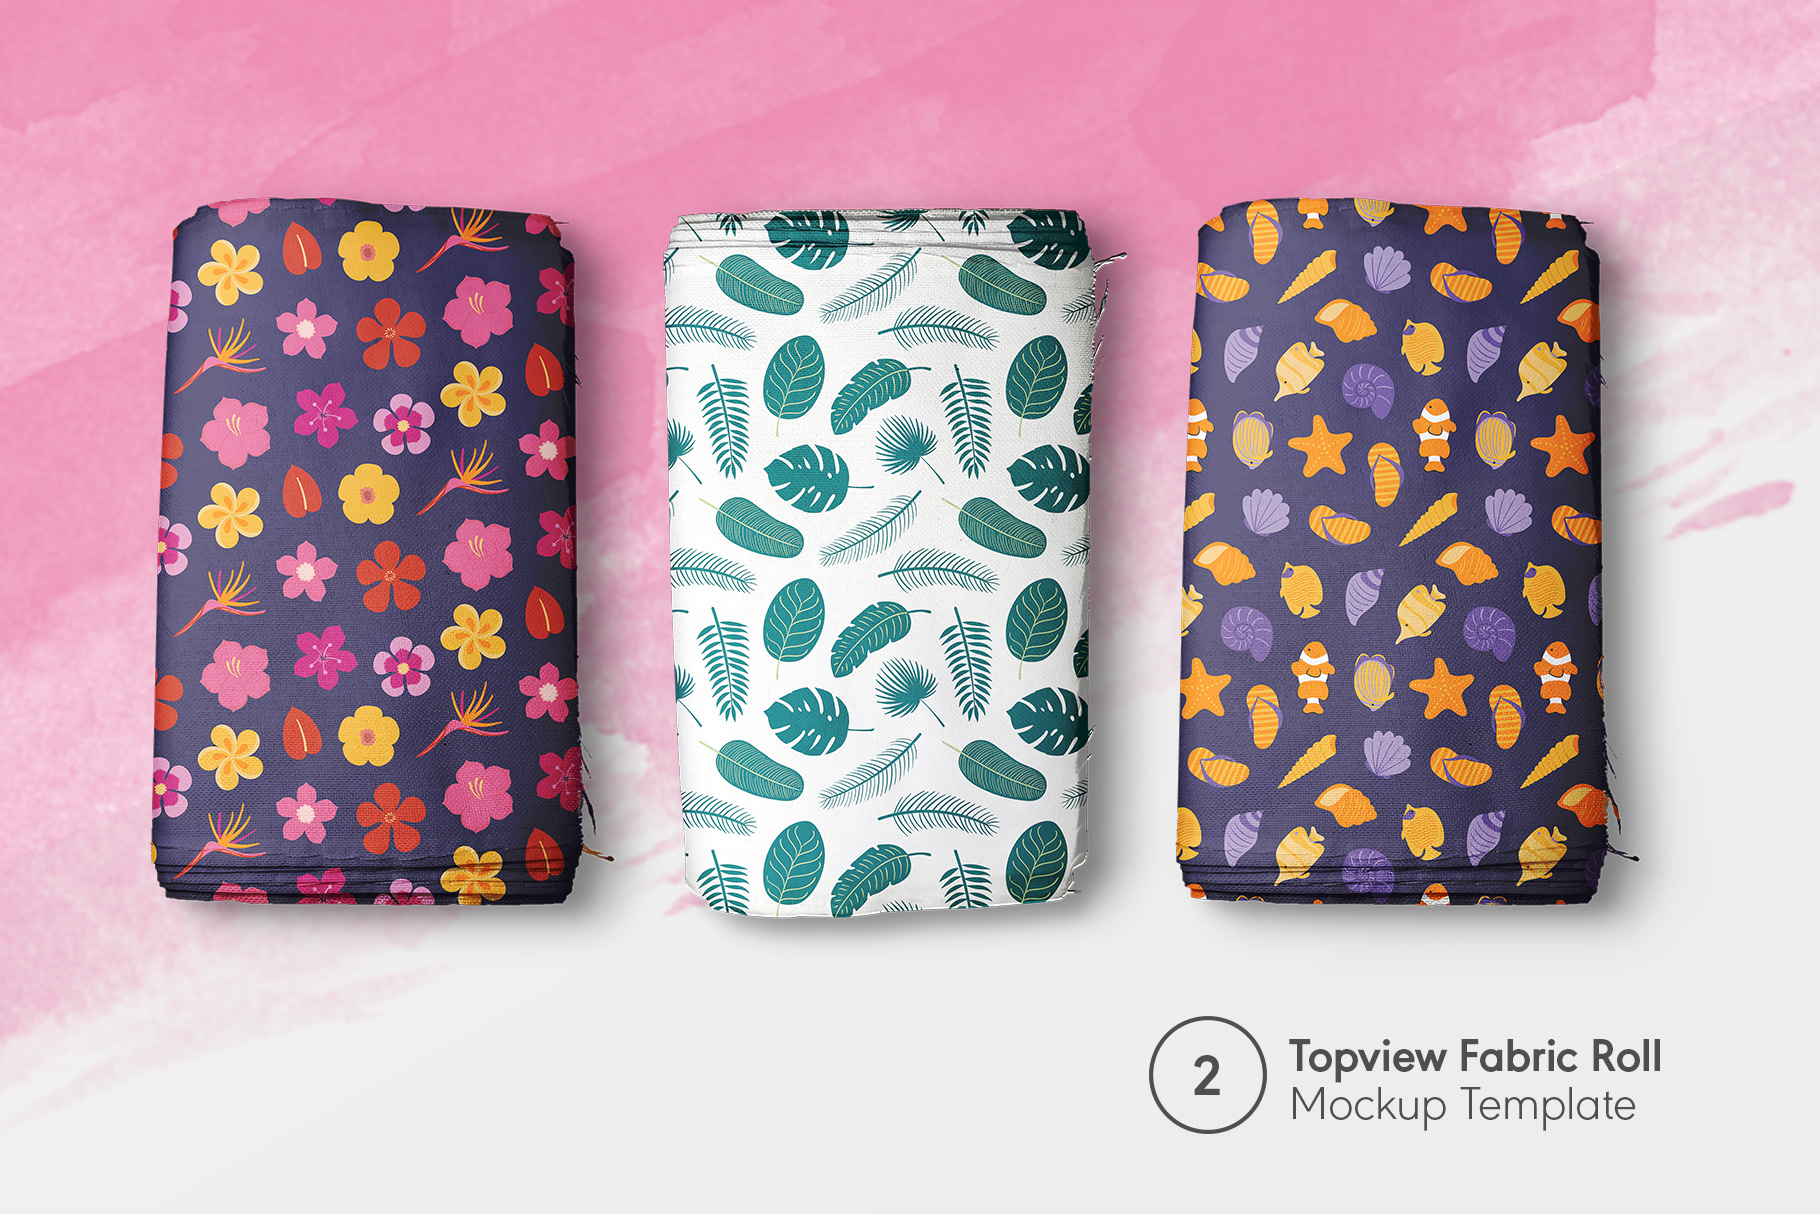 preview 2 of the top view fabric rolls mockup set